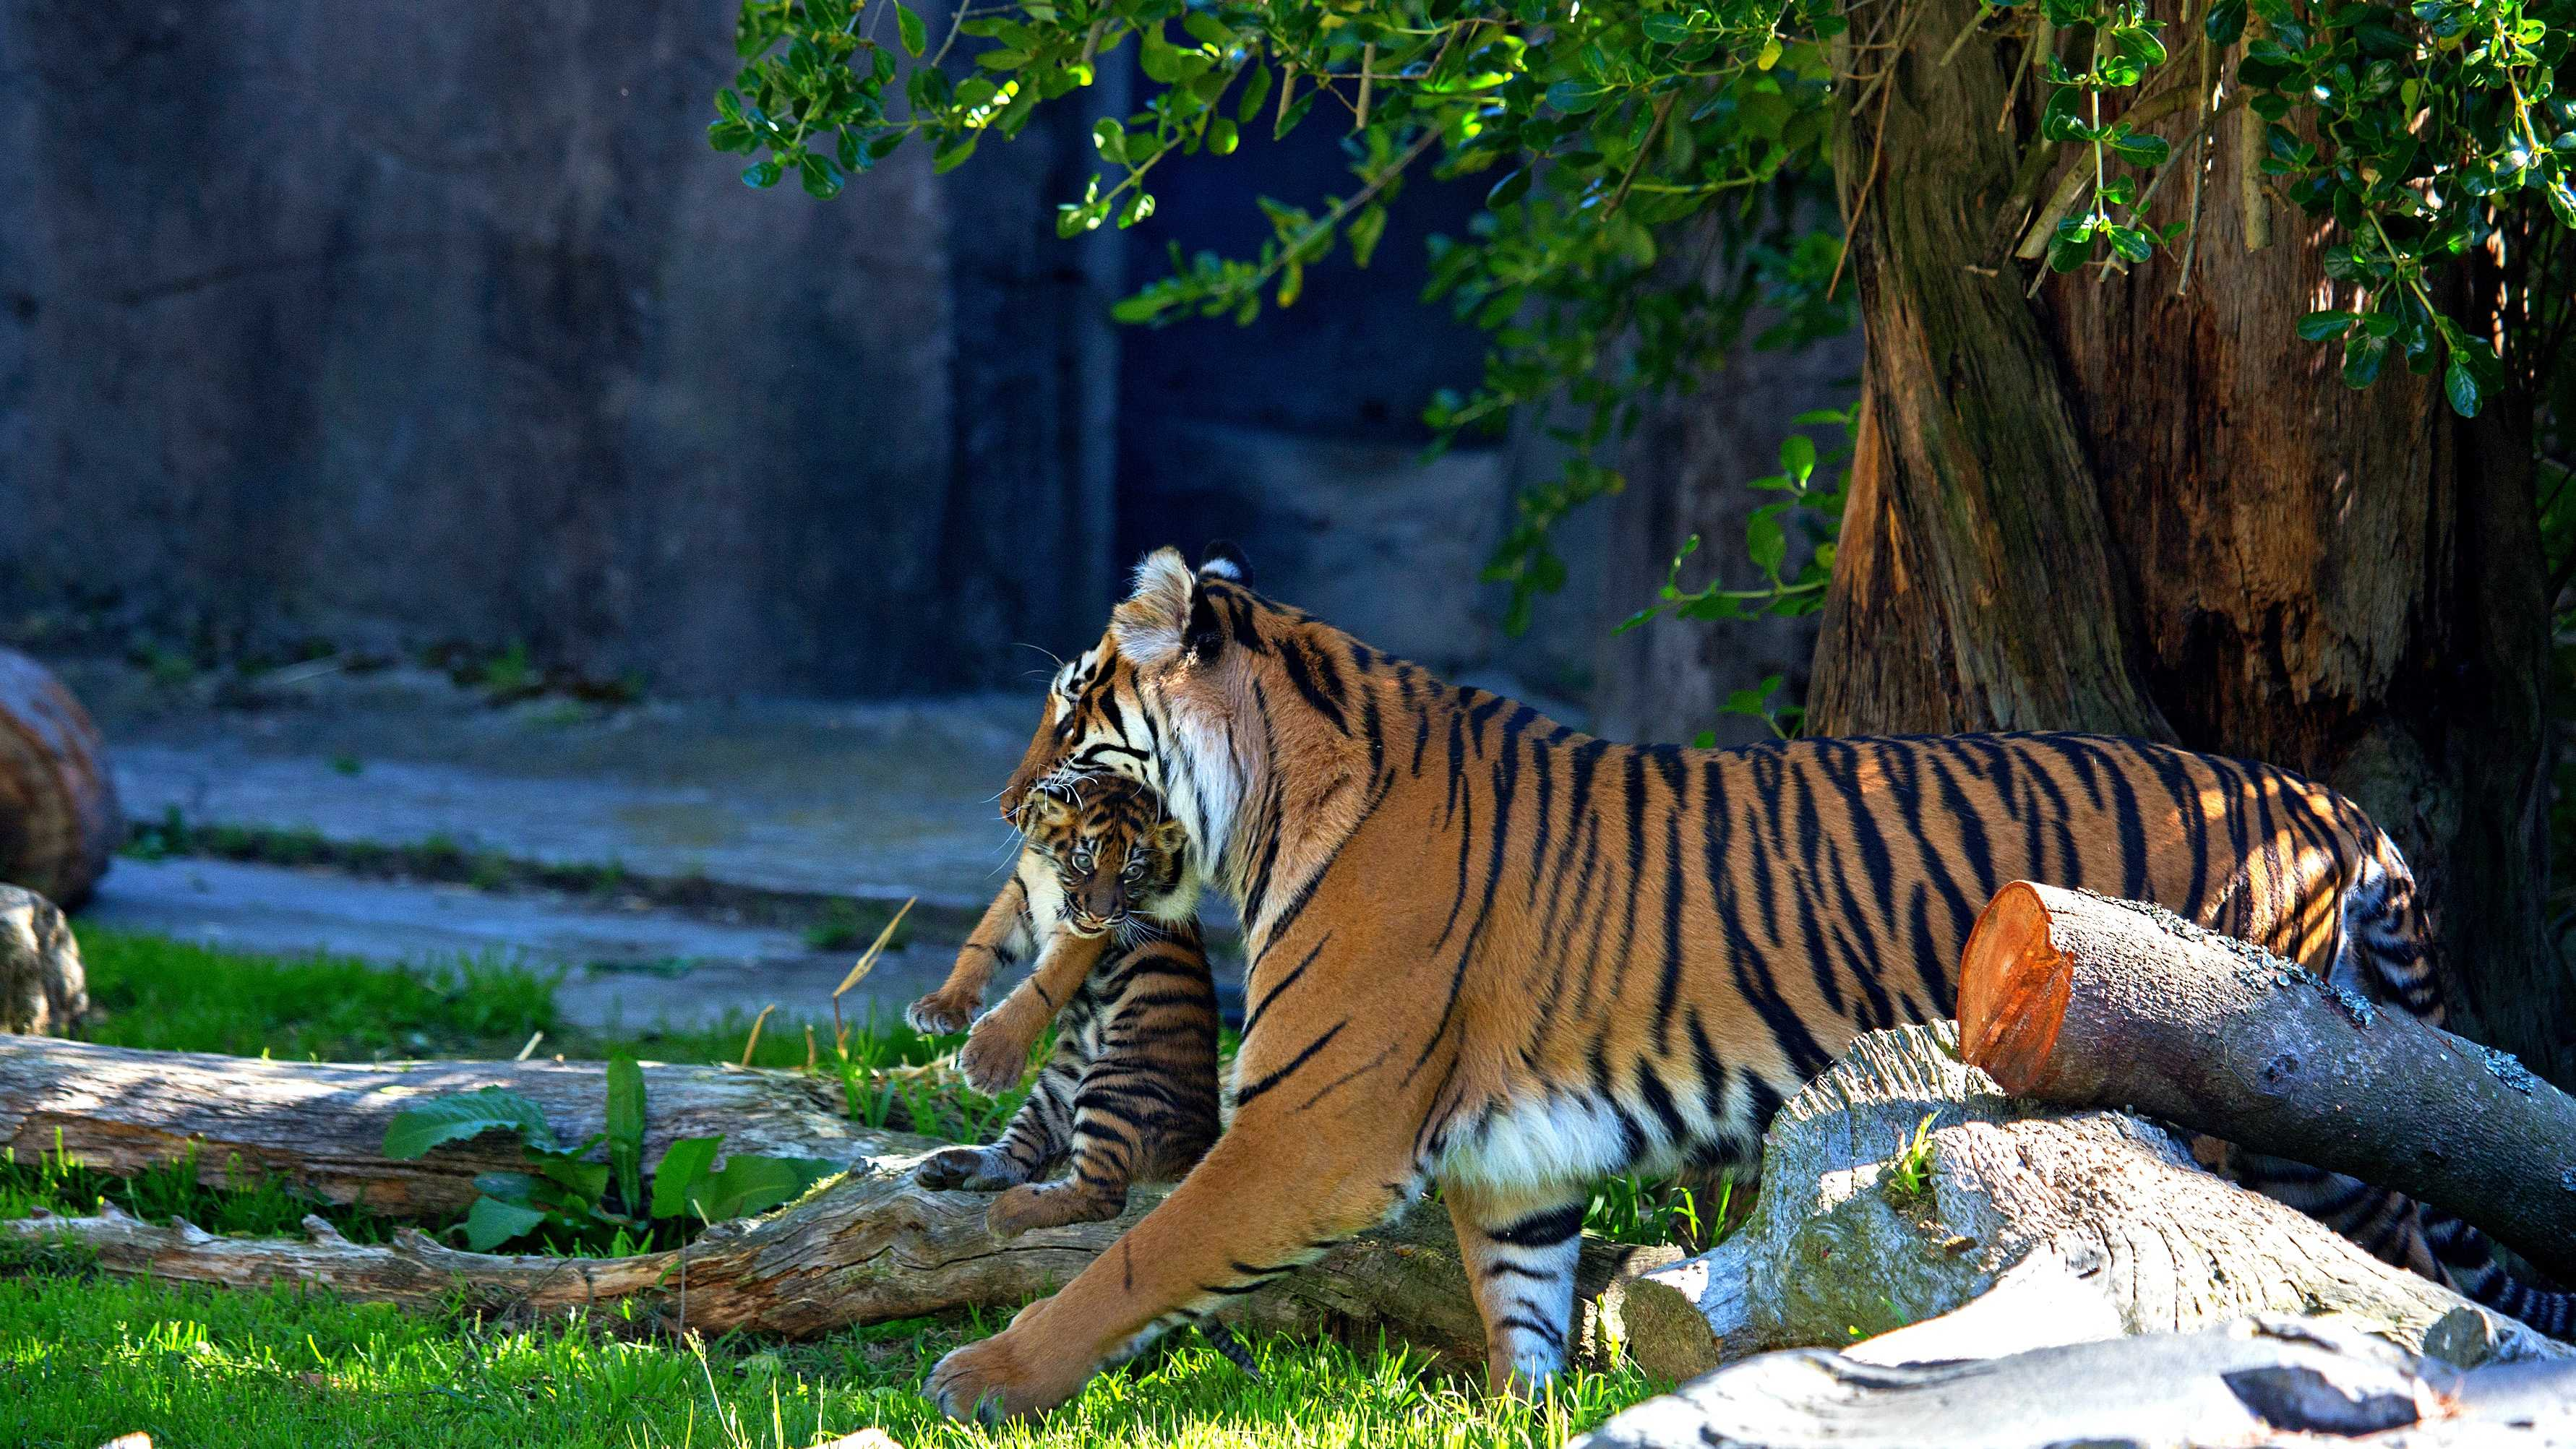 From the island of Sumatra, off the Malaysian Peninsula, these terrestrial and nocturnal cats inhabit evergreen, swamp and tropical rain forests as well as grasslands. As the smallest of the remaining subspecies of Panthera tigris, the Sumatran tiger is particularly well suited for life in the deep jungle. The fur on the upper parts of its body ranges from orange to reddish-brown, making it darker in color than other tigers. This helps it to hide within its heavily wooded forest habitat. Also unique to this subspecies are distinctly long whiskers, which serve as sensors in the dark, dense underbrush.